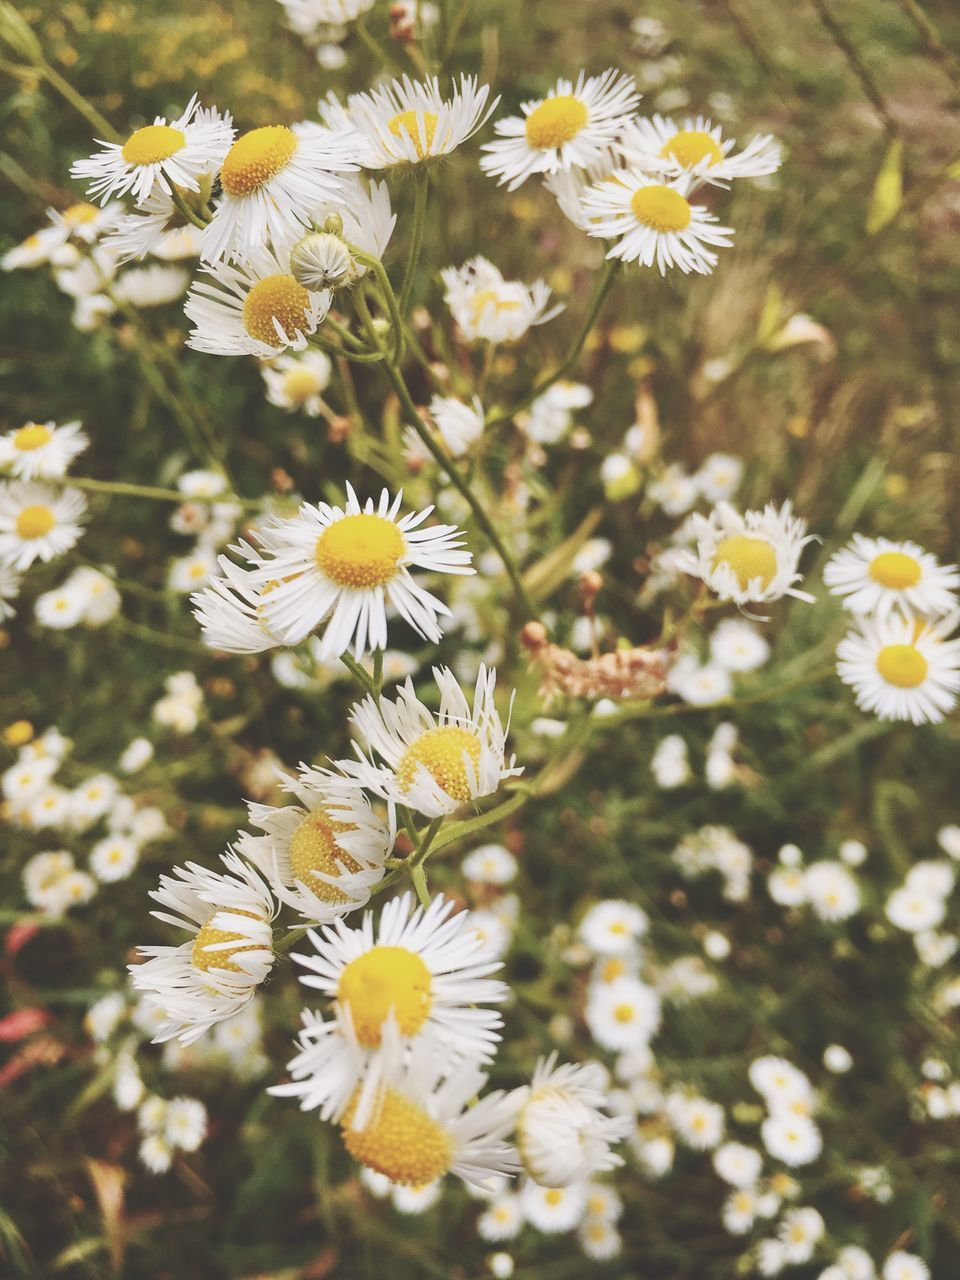 flower, fragility, white color, petal, freshness, nature, flower head, growth, beauty in nature, day, blooming, pollen, yellow, no people, close-up, plant, outdoors, springtime